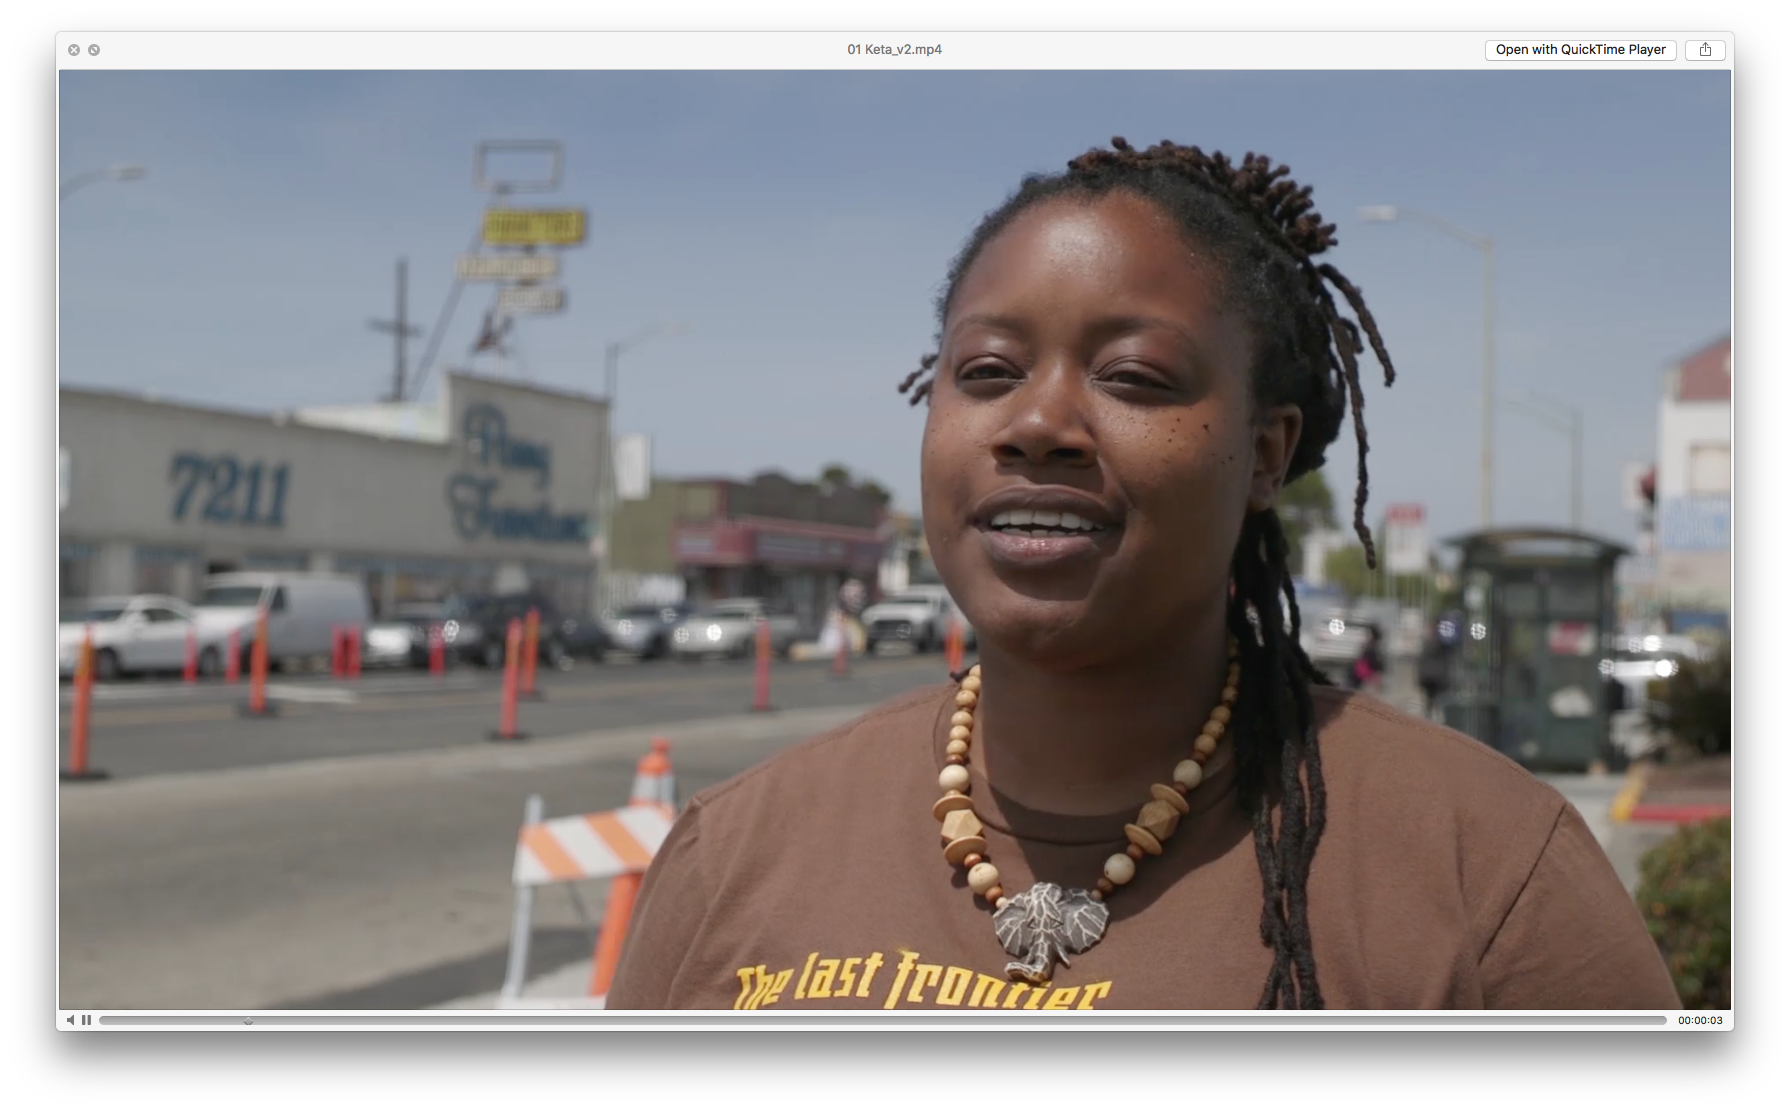 At the same time, the neighborhood is also subject to bay-wide gentrification pressures recently made even more acute as two (and maybe three) professional sports teams have left the site, raising questions about its future development. Image: Video interview with Marquita Price, East Oakland Collective. The All Bay Collective/modem.